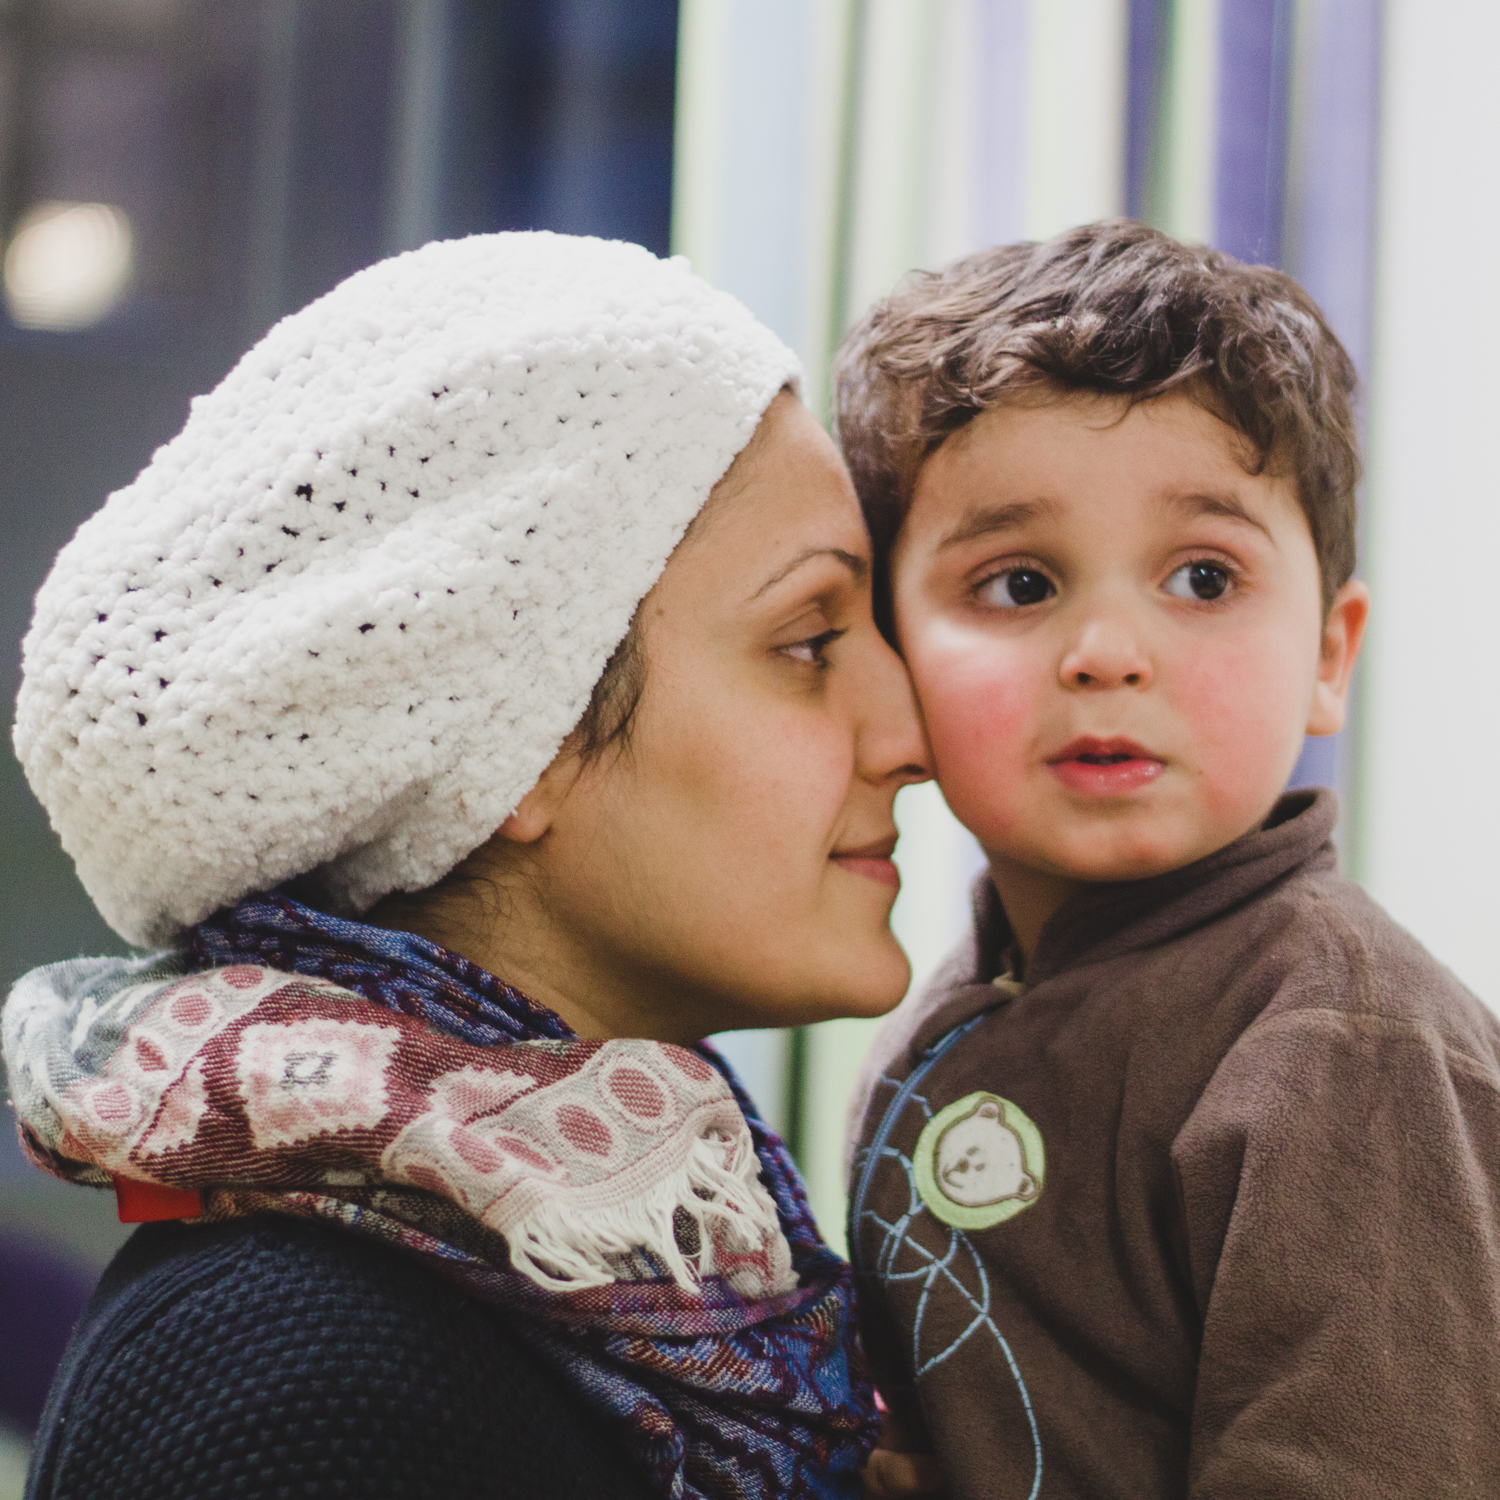 AN IRAQI MOTHER IN FINLAND